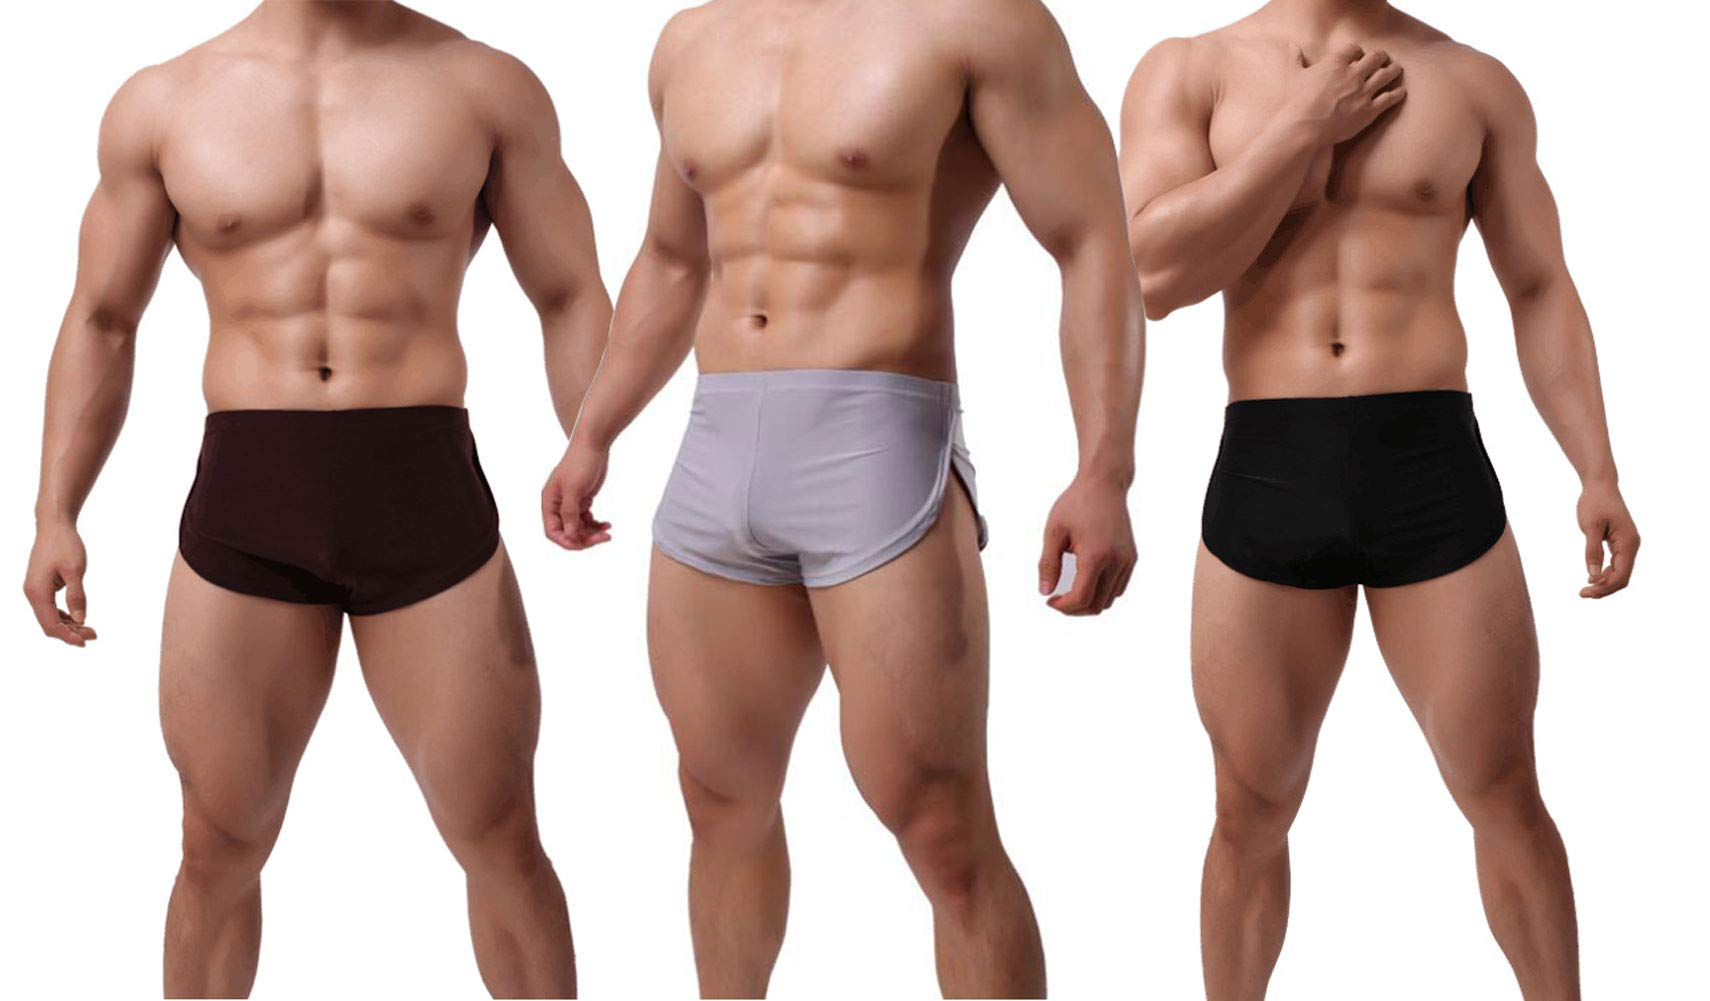 Farlenoyar 8 Pack Mens Cotton Breathable Comfort Soft Underwear Boxer Waistband Briefs